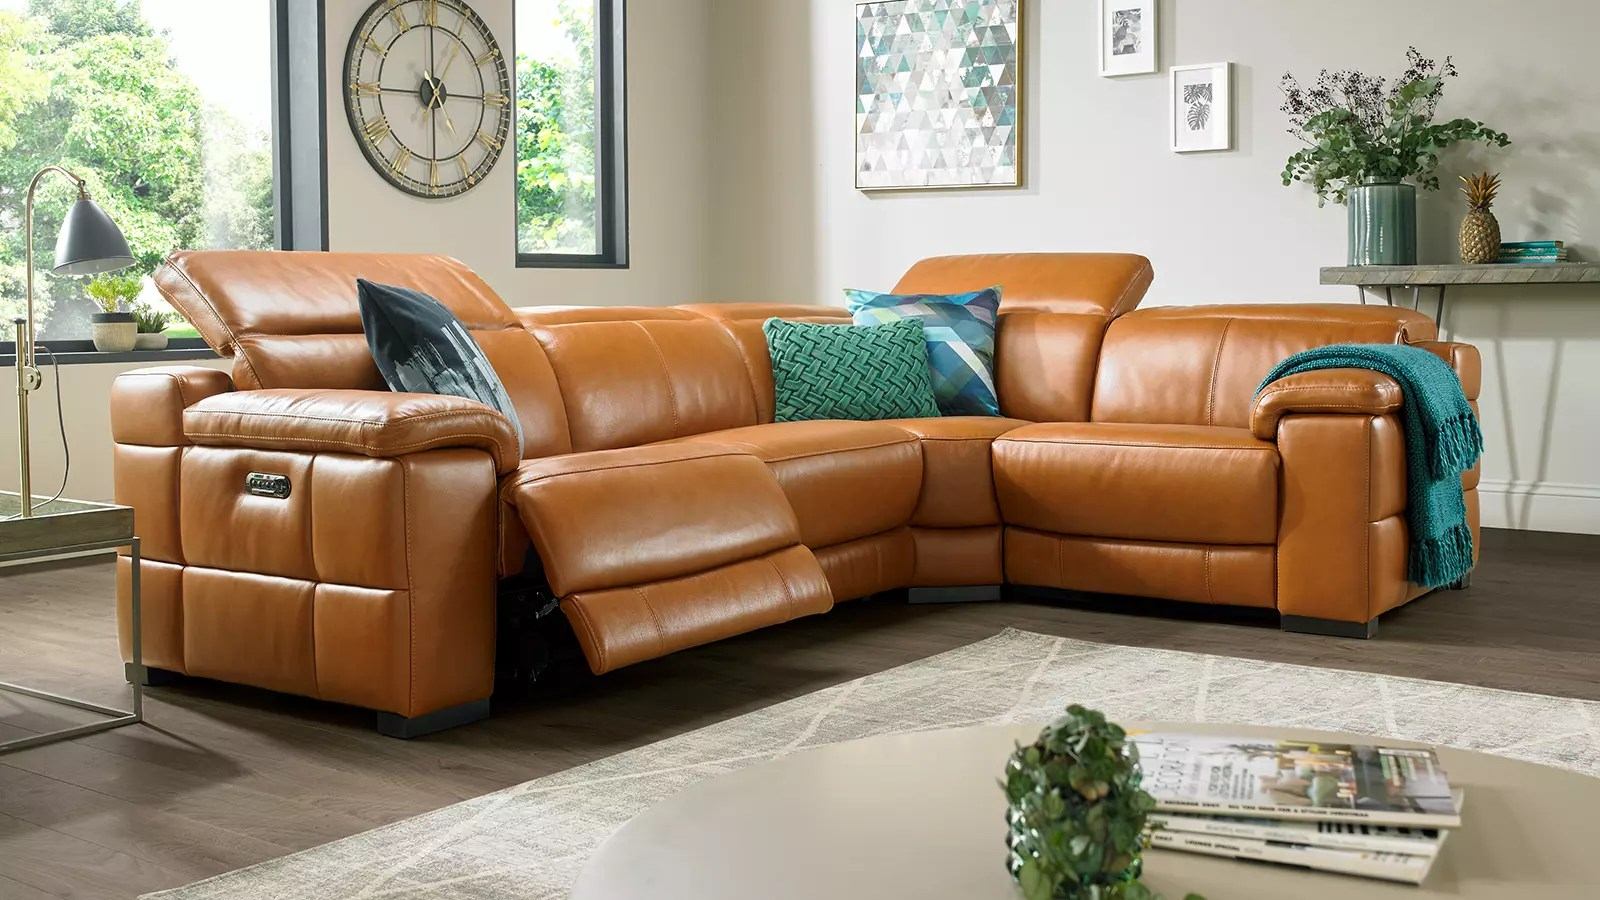 Sofology Sofas Dorchester Recliner Sofas Leather Fabric And Corner Sofology